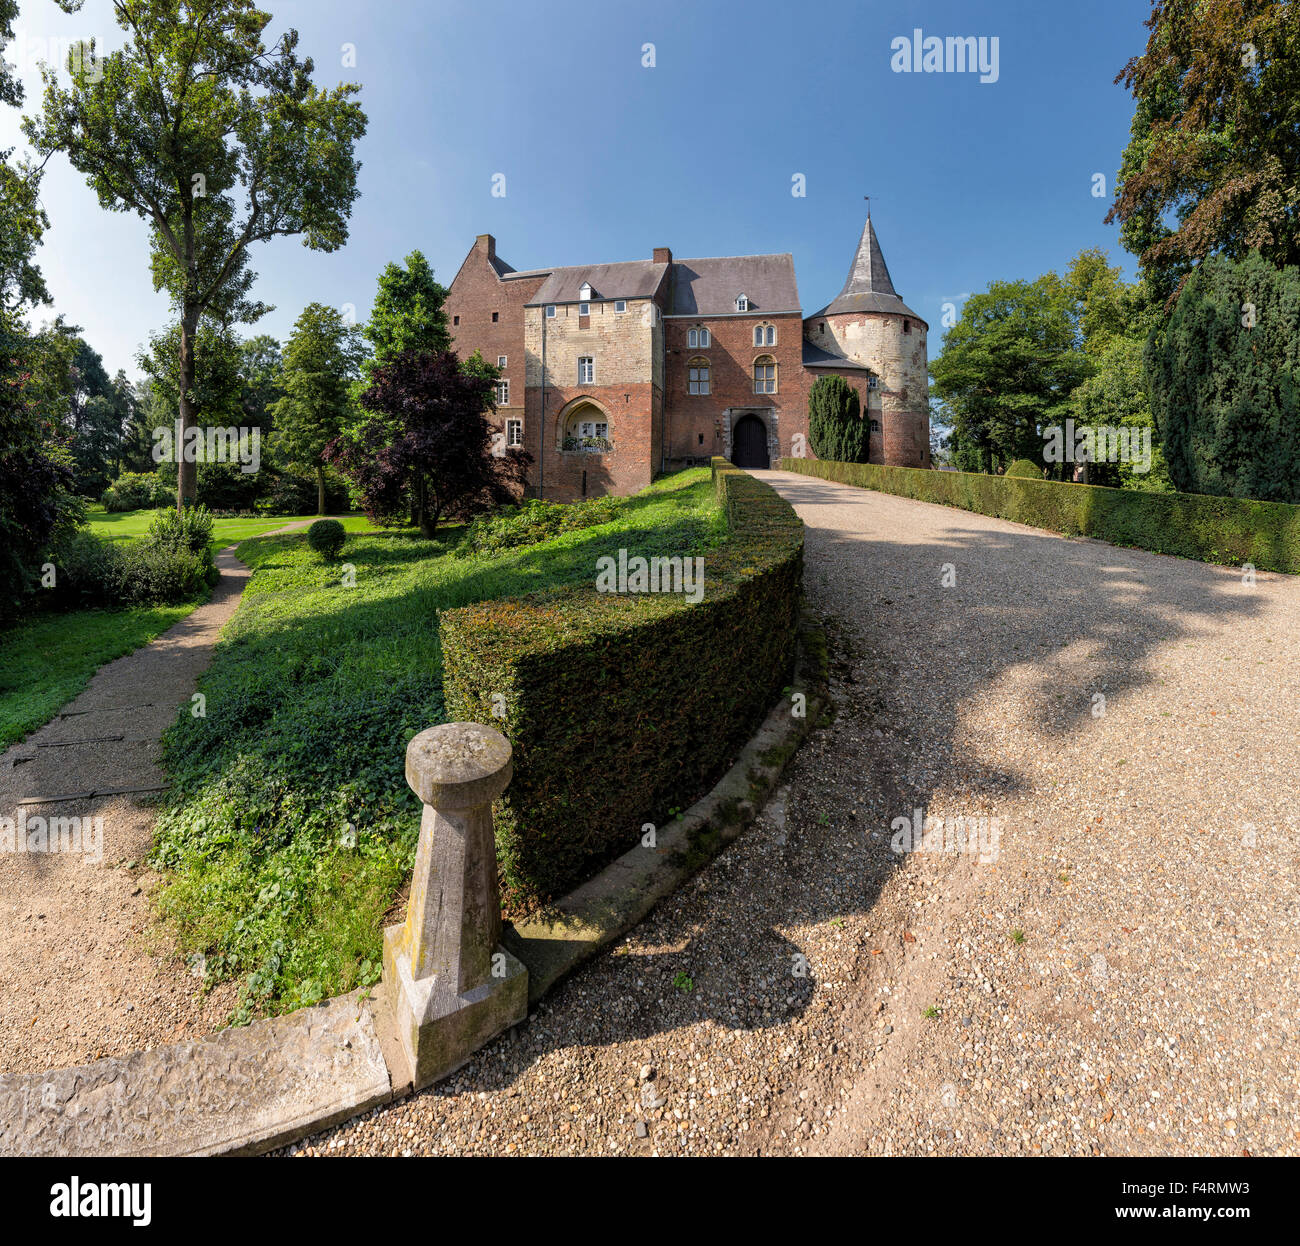 Netherlands, Europe, Holland, Horn, Limburg, castle, forest, wood, trees, summer, garden, Horn castle - Stock Image